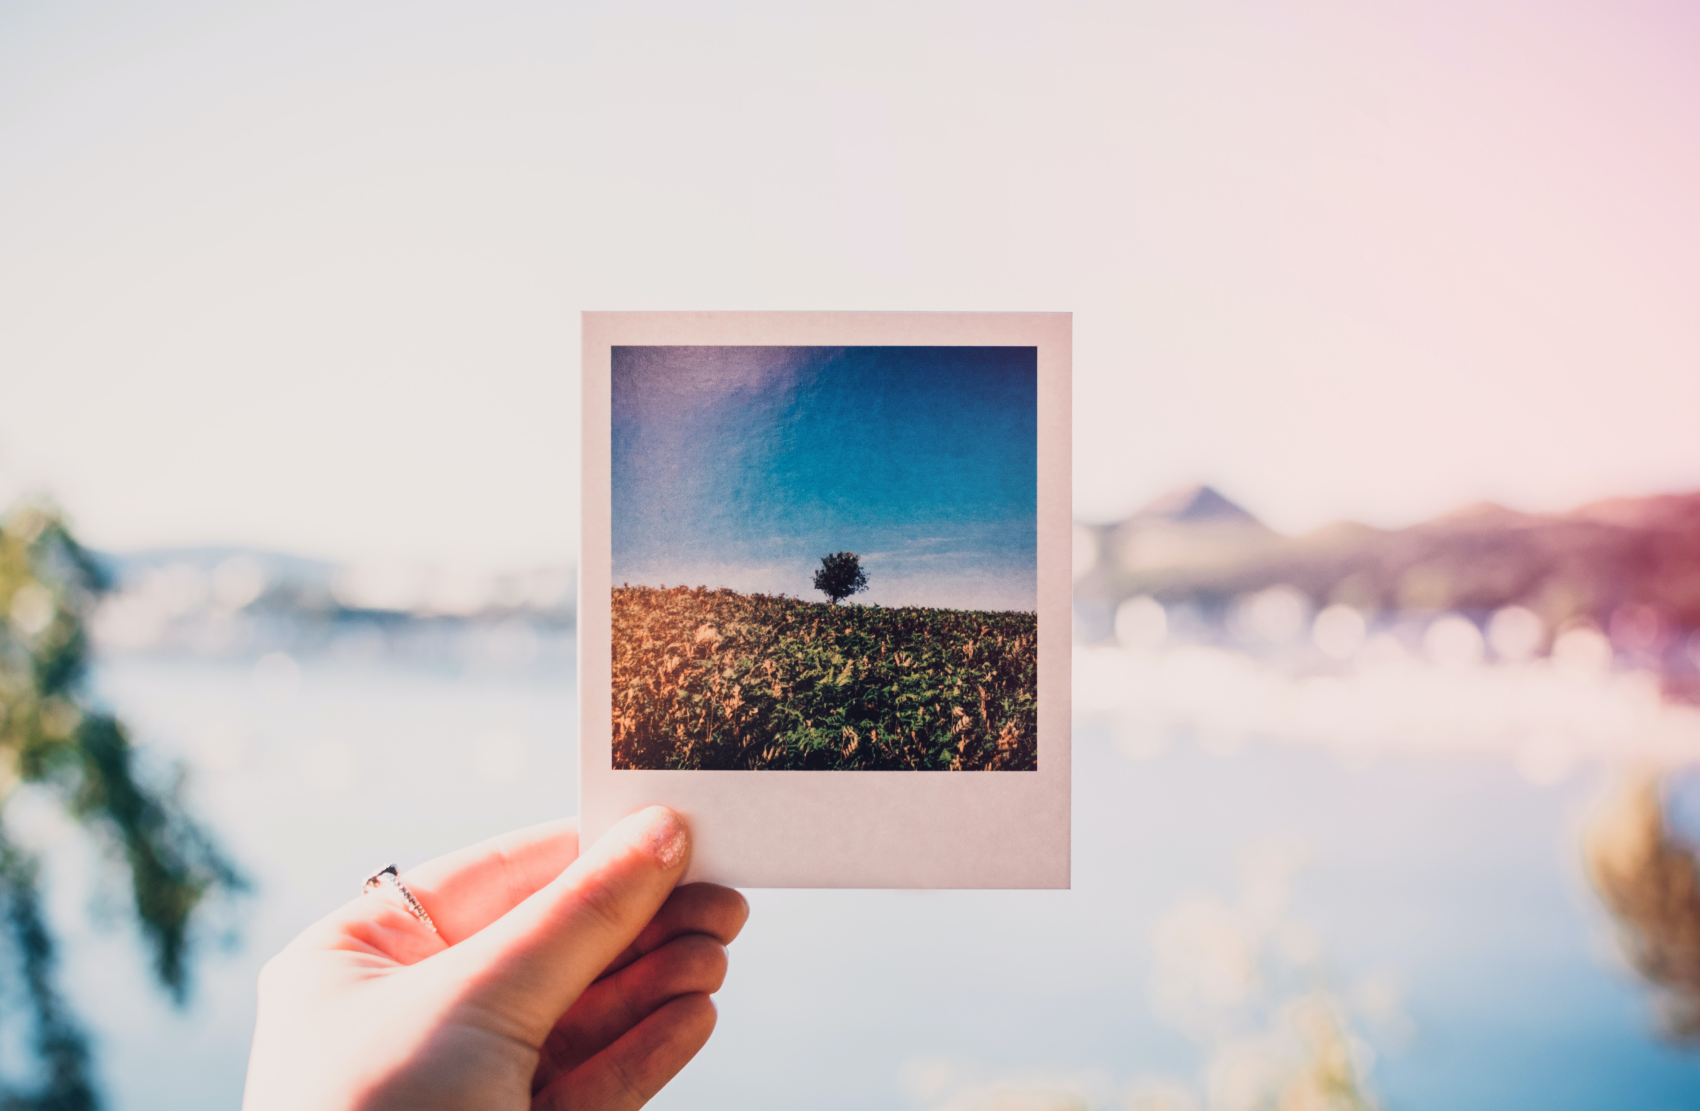 Polaroid photograph illustrates the link between epilepsy and memory loss